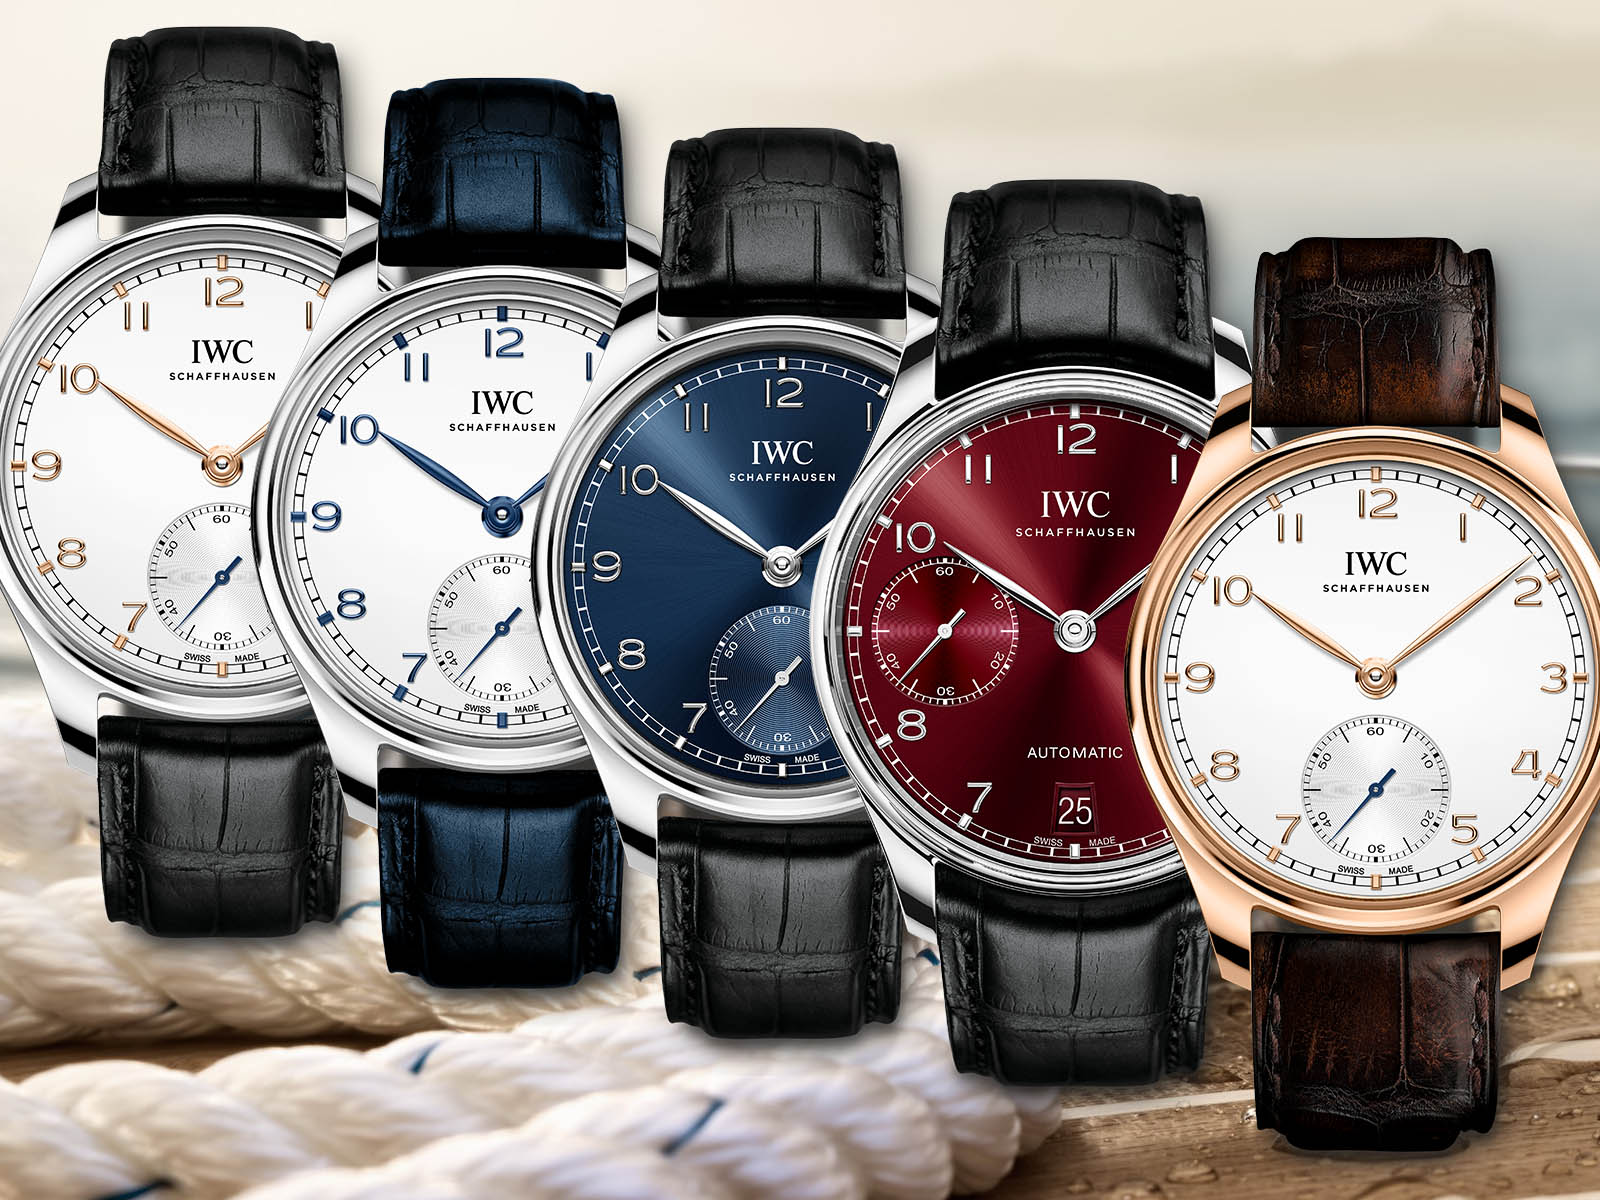 iwc-schaffhausen-portugieser-automatic-watches-wonders-2020-1.jpg